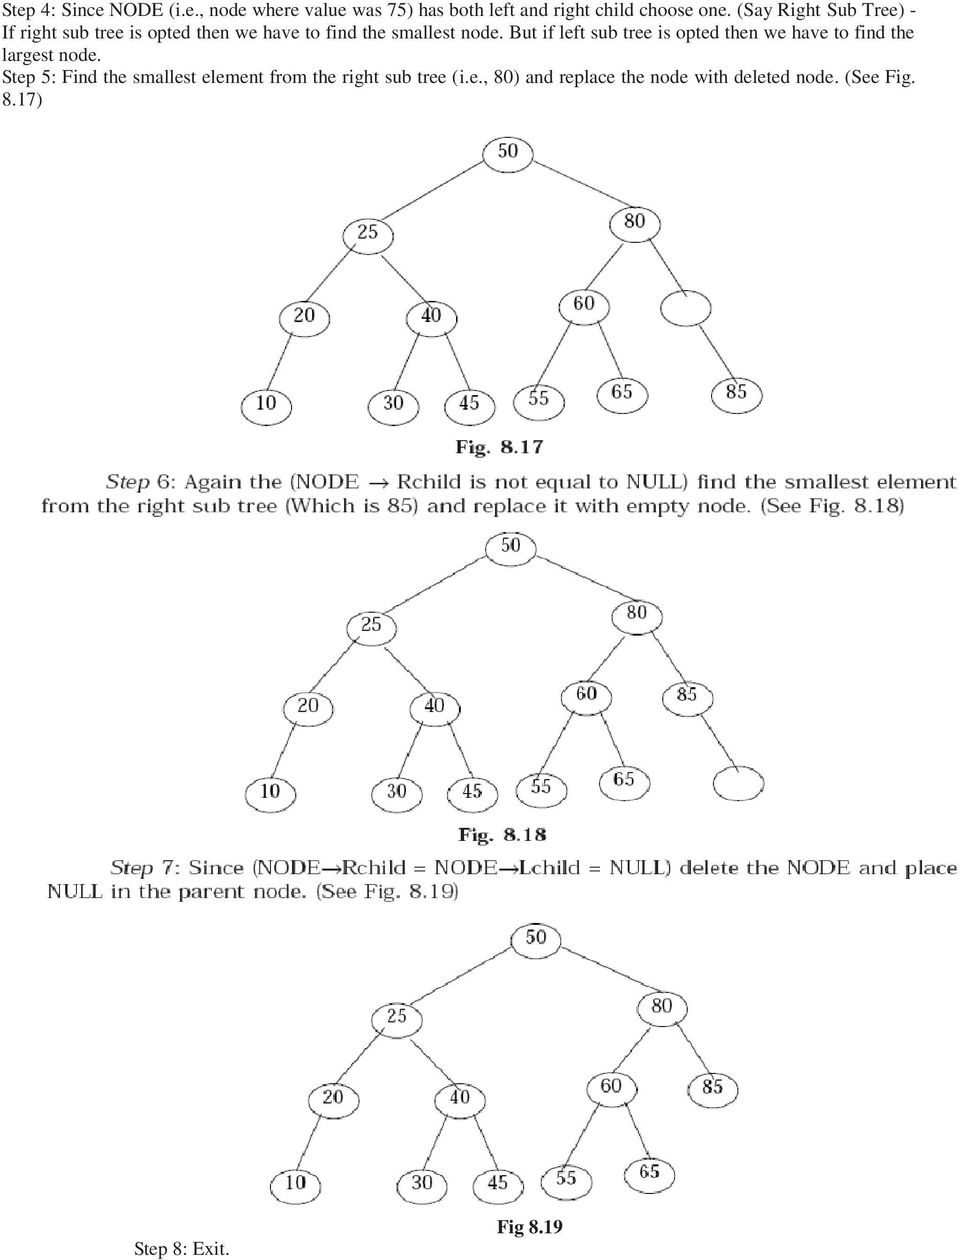 But if left sub tree is opted then we have to find the largest node.